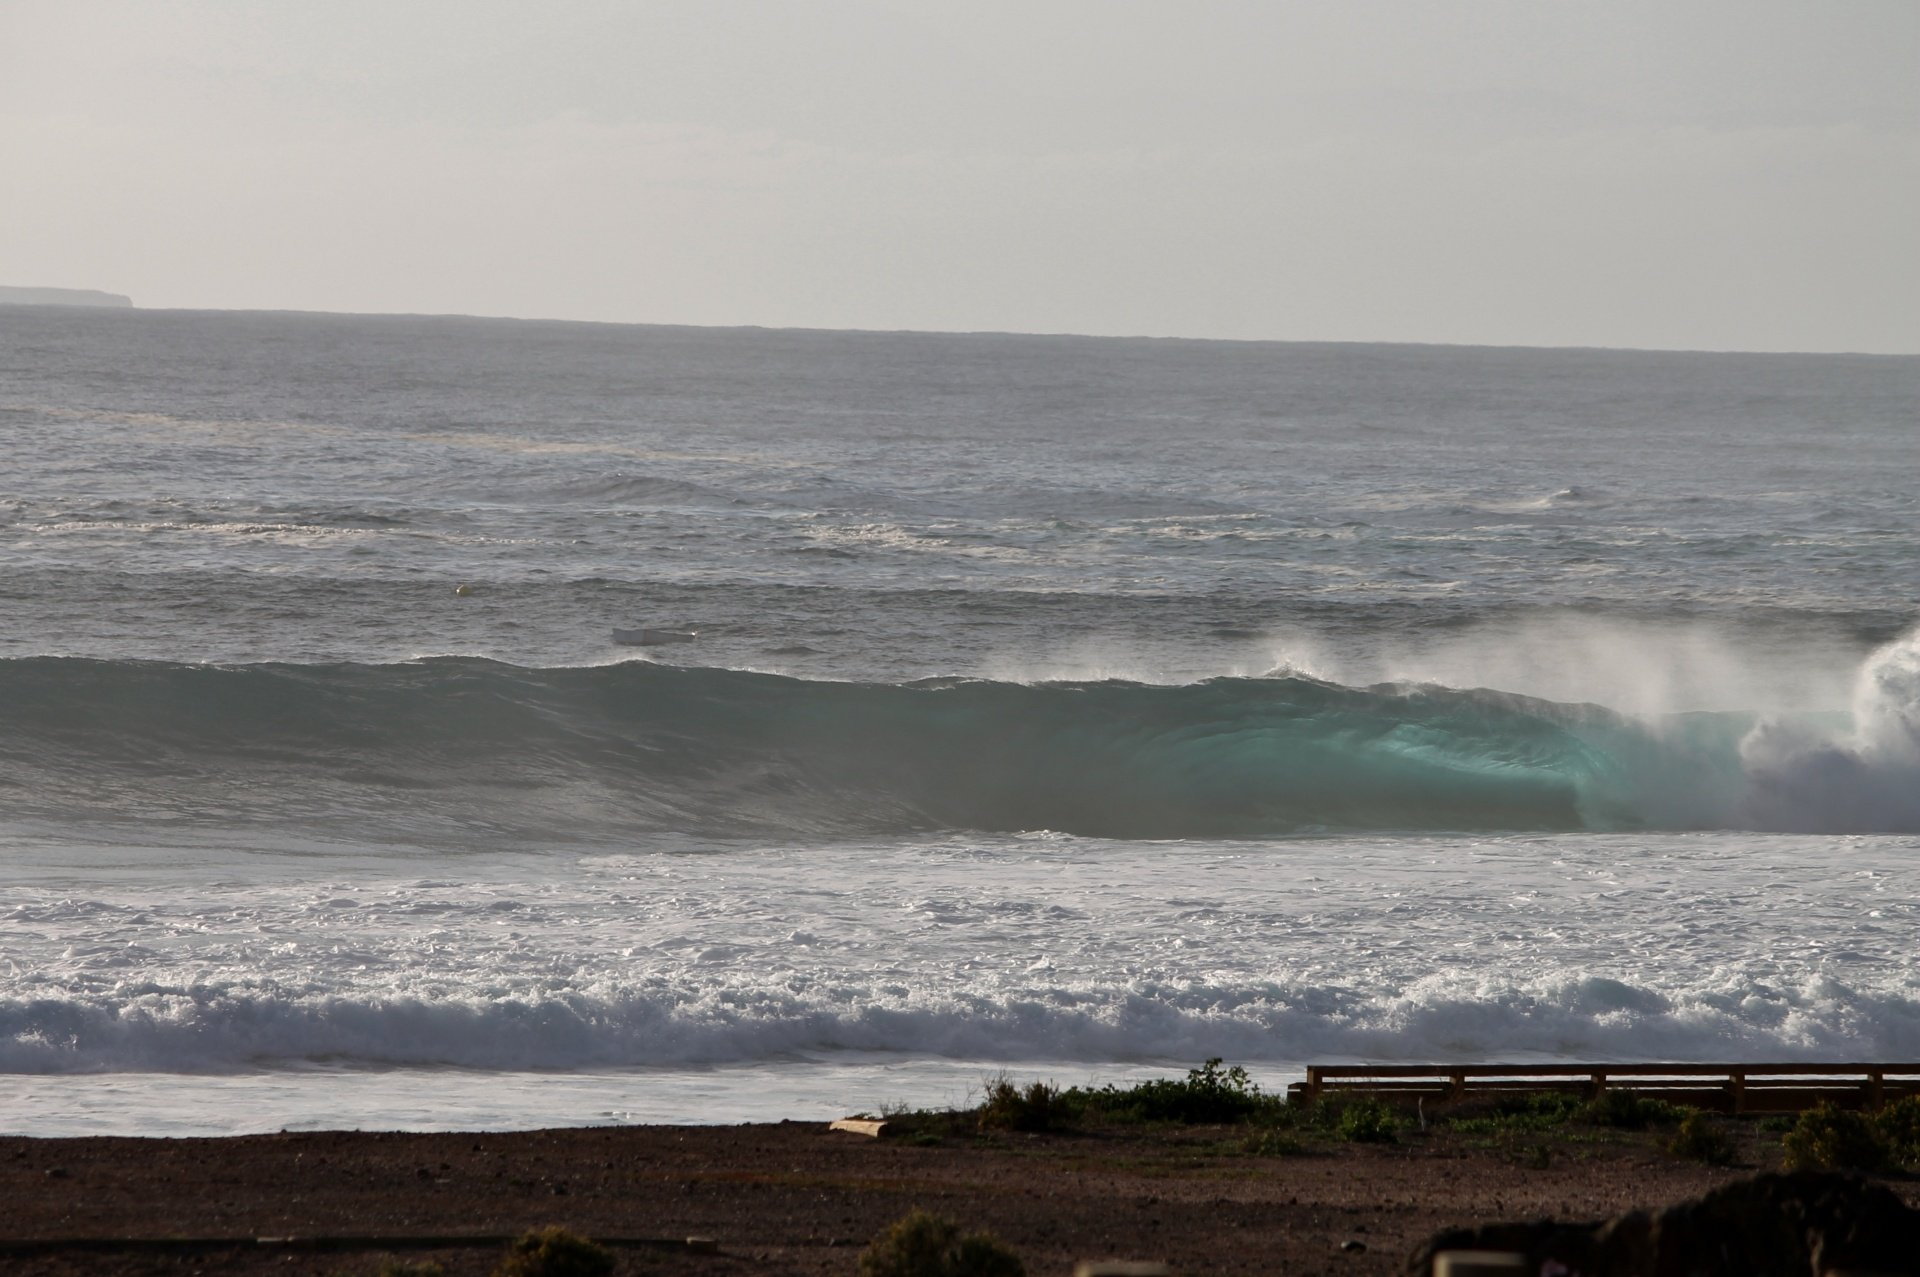 Ryan Watters's photo of El Confital